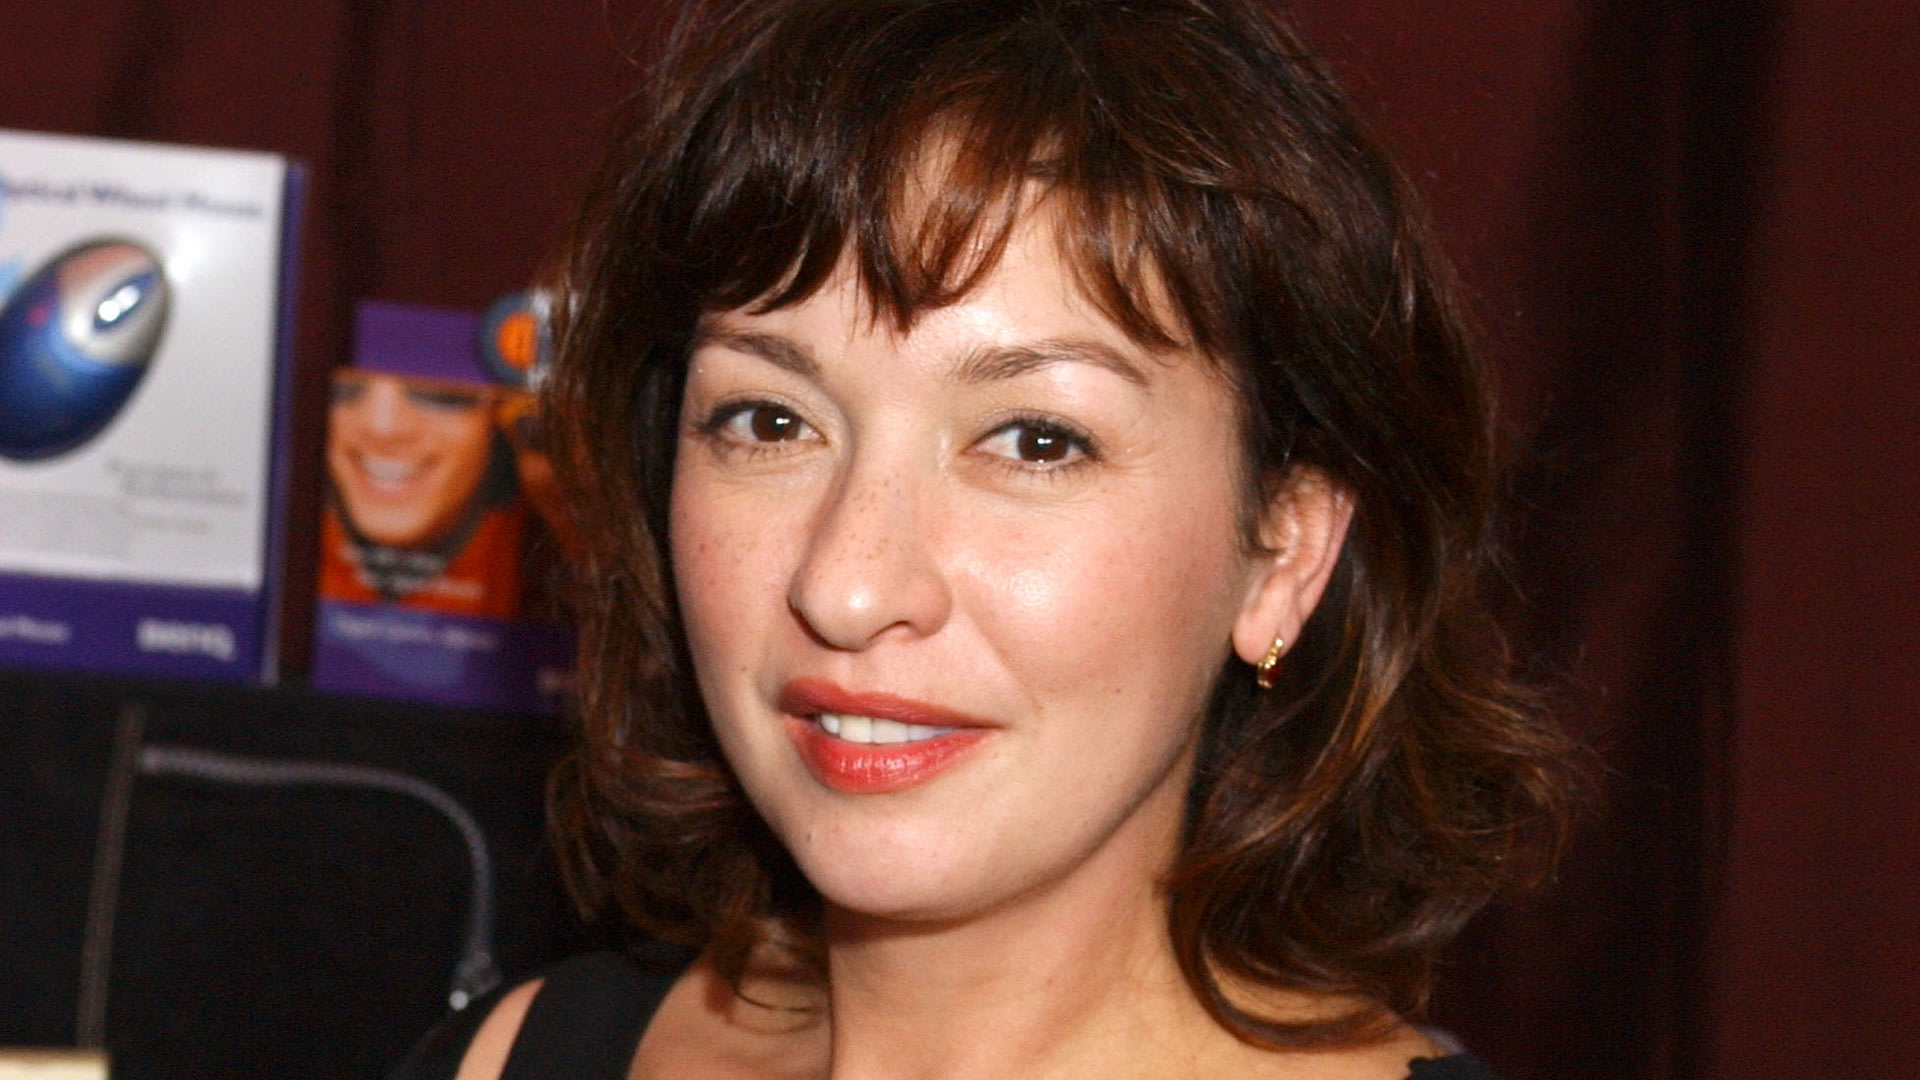 Elizabeth Pena, Co-Star of 'Jacob's Ladder' and 'La Bamba,' Dies at 55